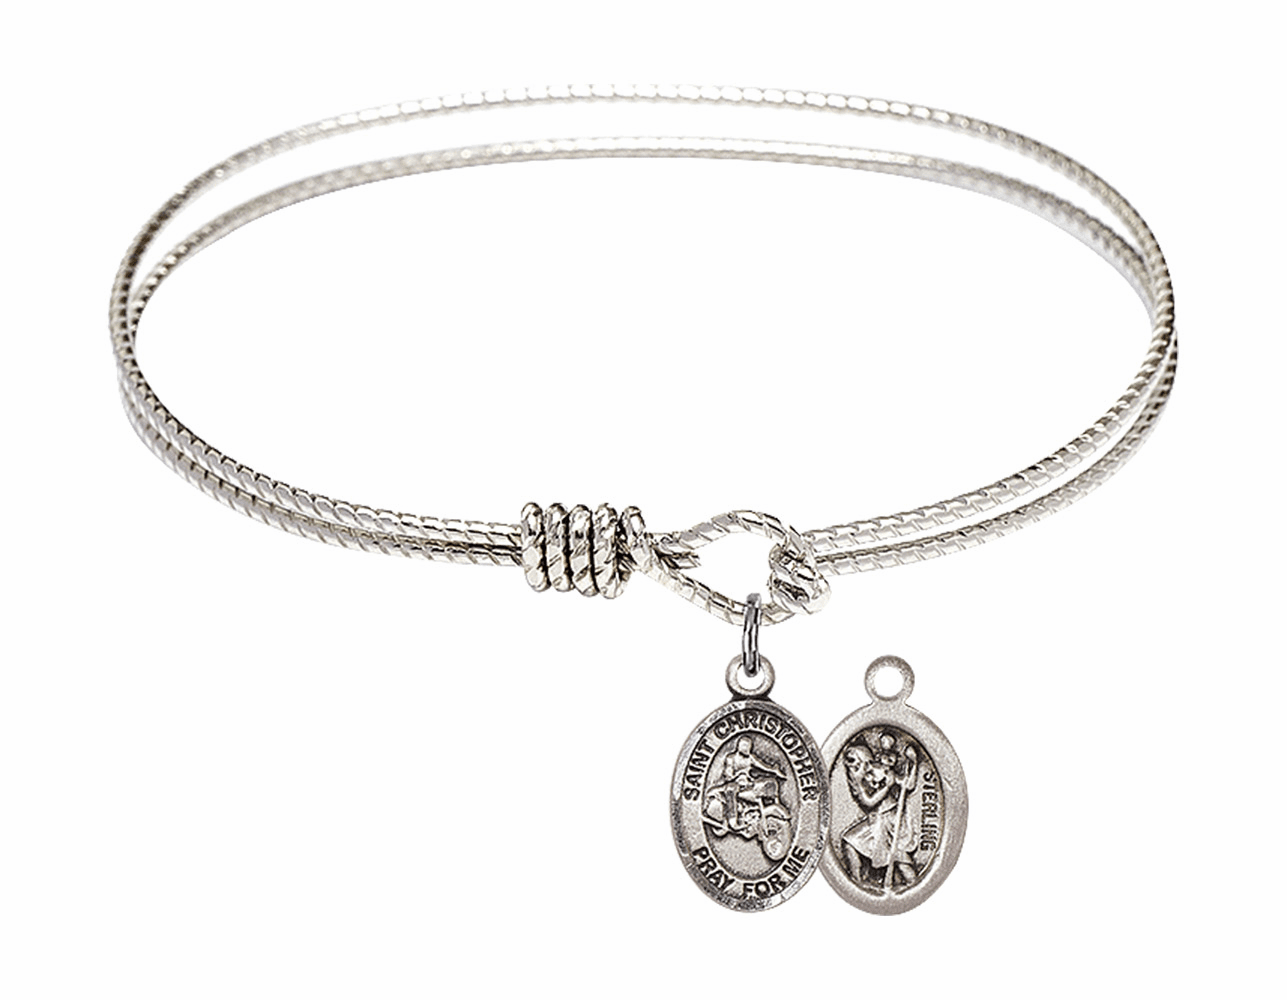 Twist Round Eye Hook St Christopher Motorcycle Riding Bangle Charm Bracelet by Bliss